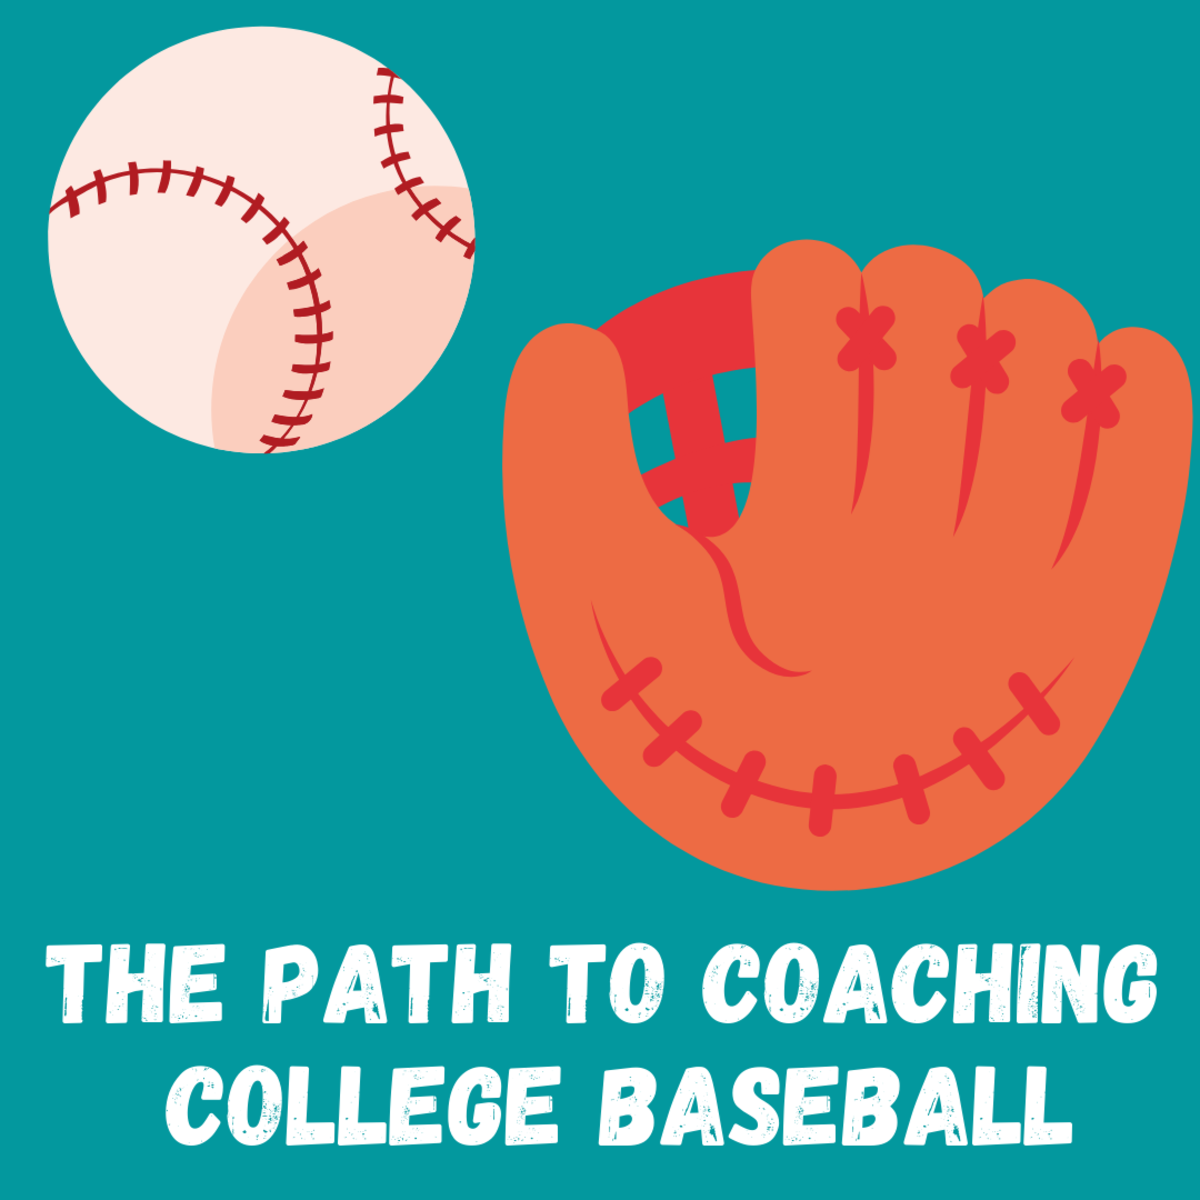 The Path to Coaching College Baseball